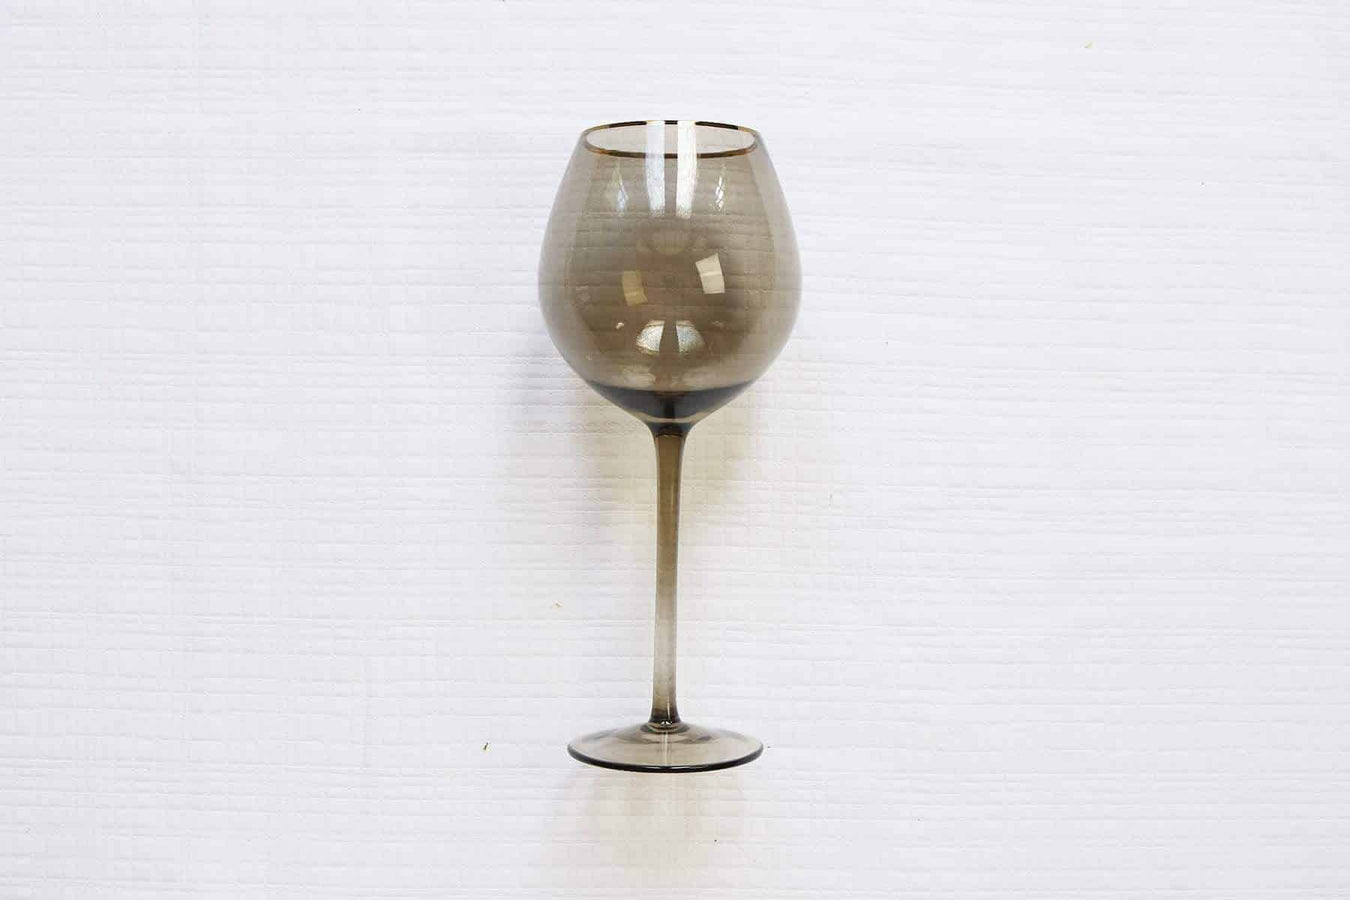 Gold Rim Black Smoke Glass-Set of 4